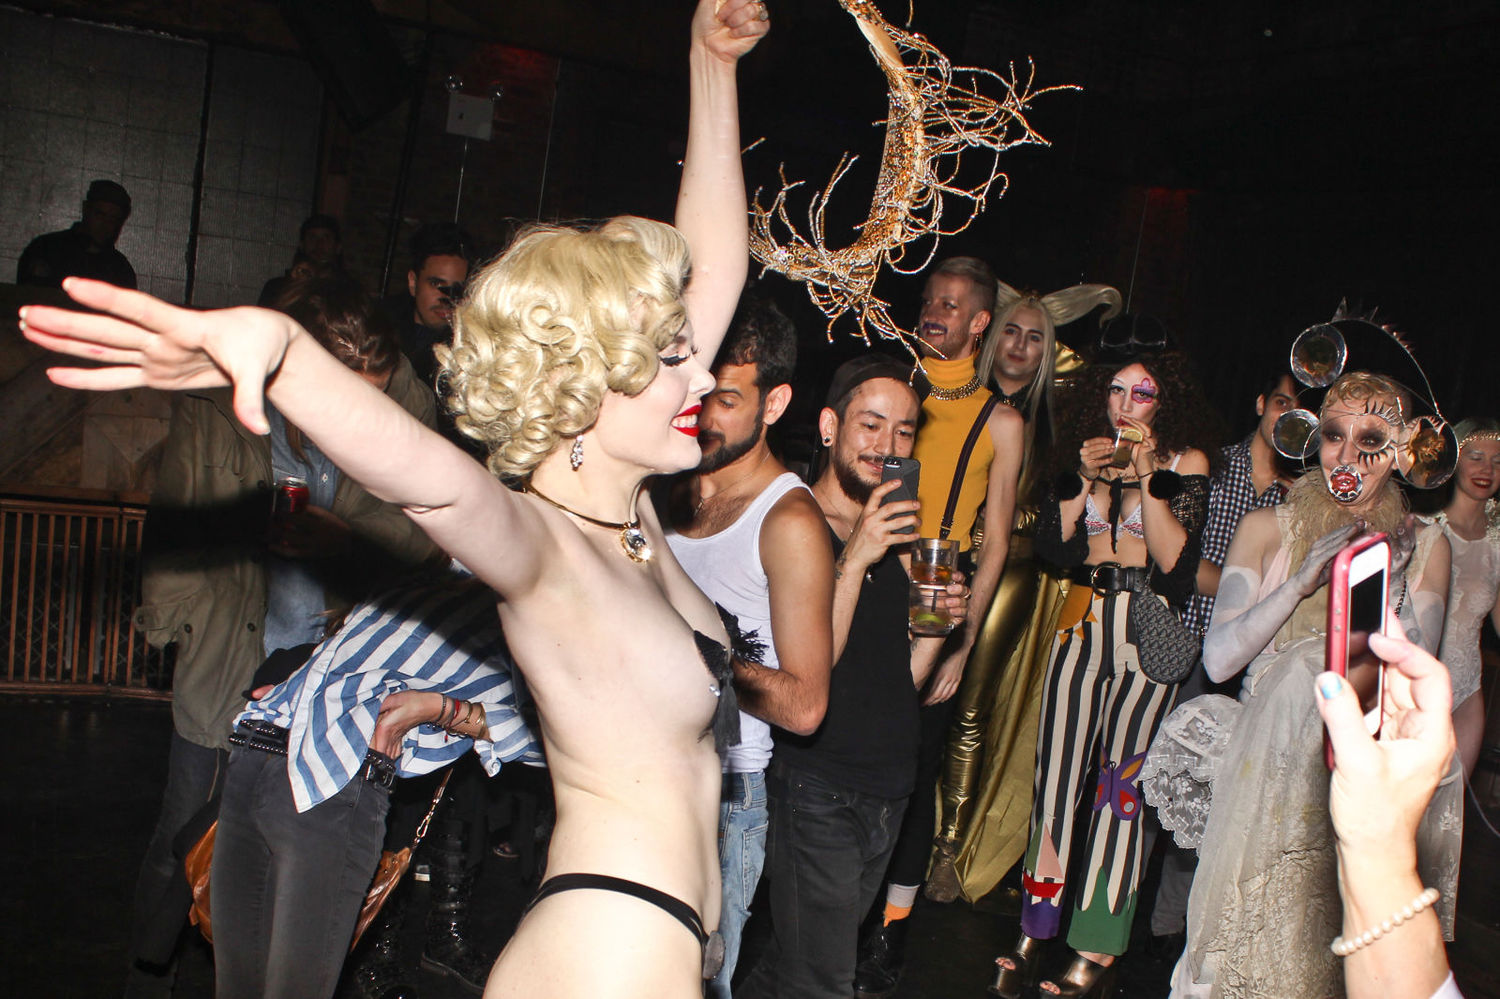 ...and delights the crowd with an impromptu strip tease.